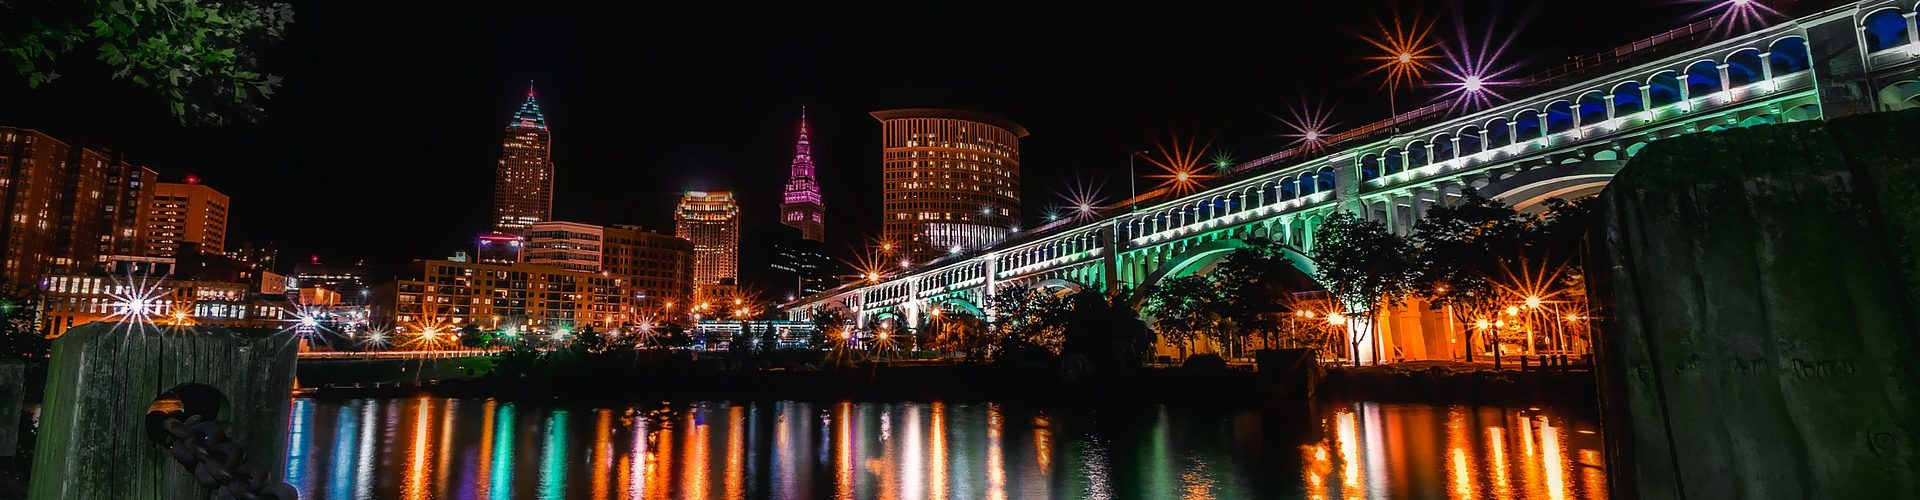 Pros and Cons of moving to Cleveland